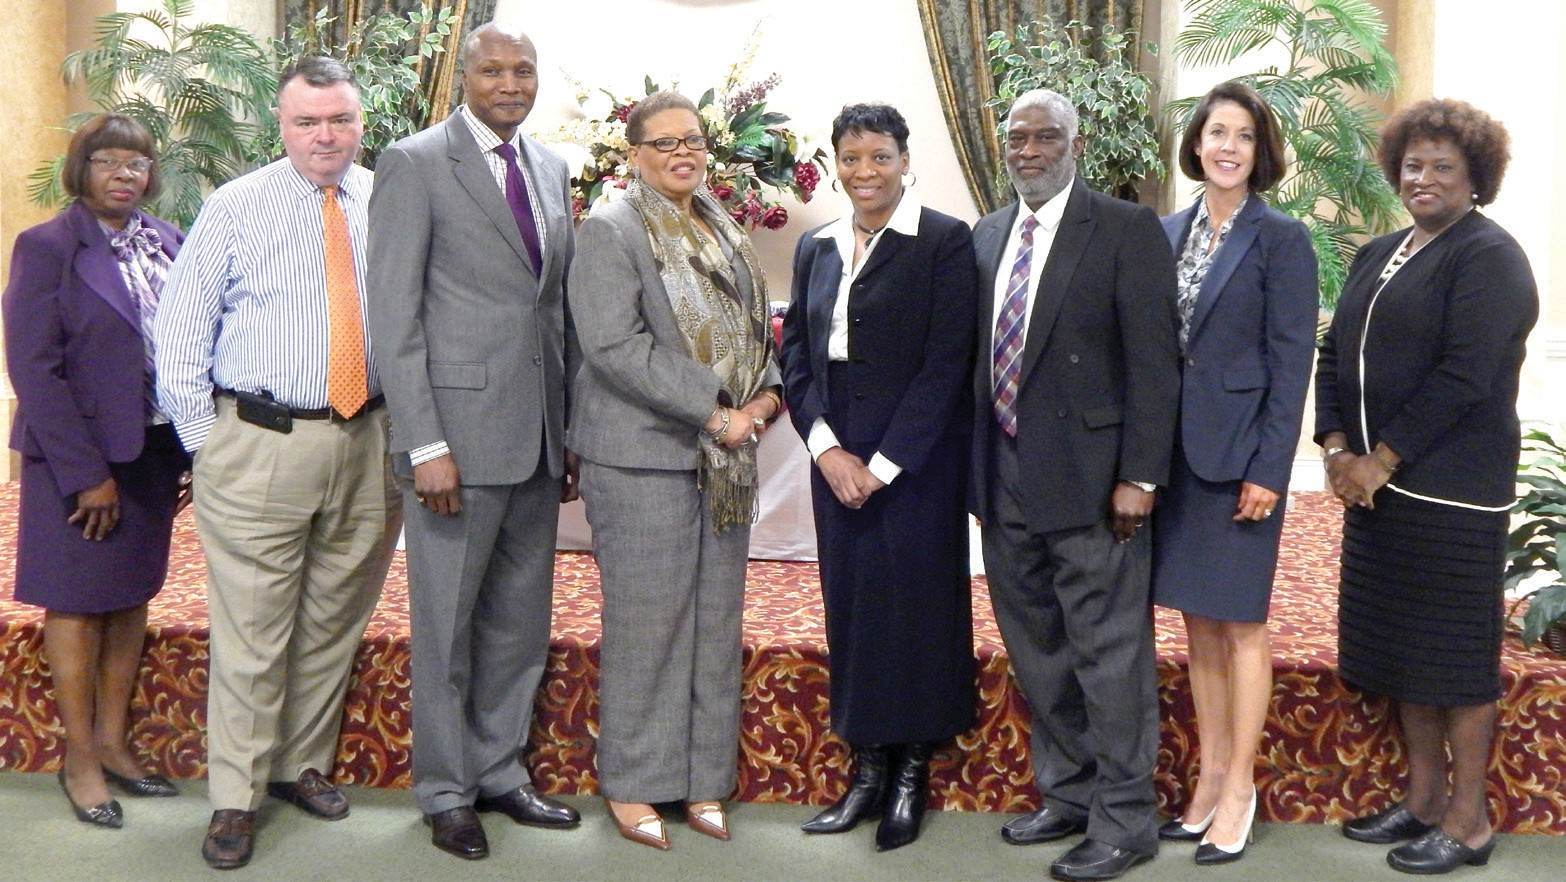 Greenbriar Board of Directors sworn in by D.A. Meg Heap. (L-R:) Dr. Clemontine Washington, Douglas Reed, Ray Truitt, Juanita Adams, Cathy James, Dr. Alfred Young, Meg Heap and Gena Taylor